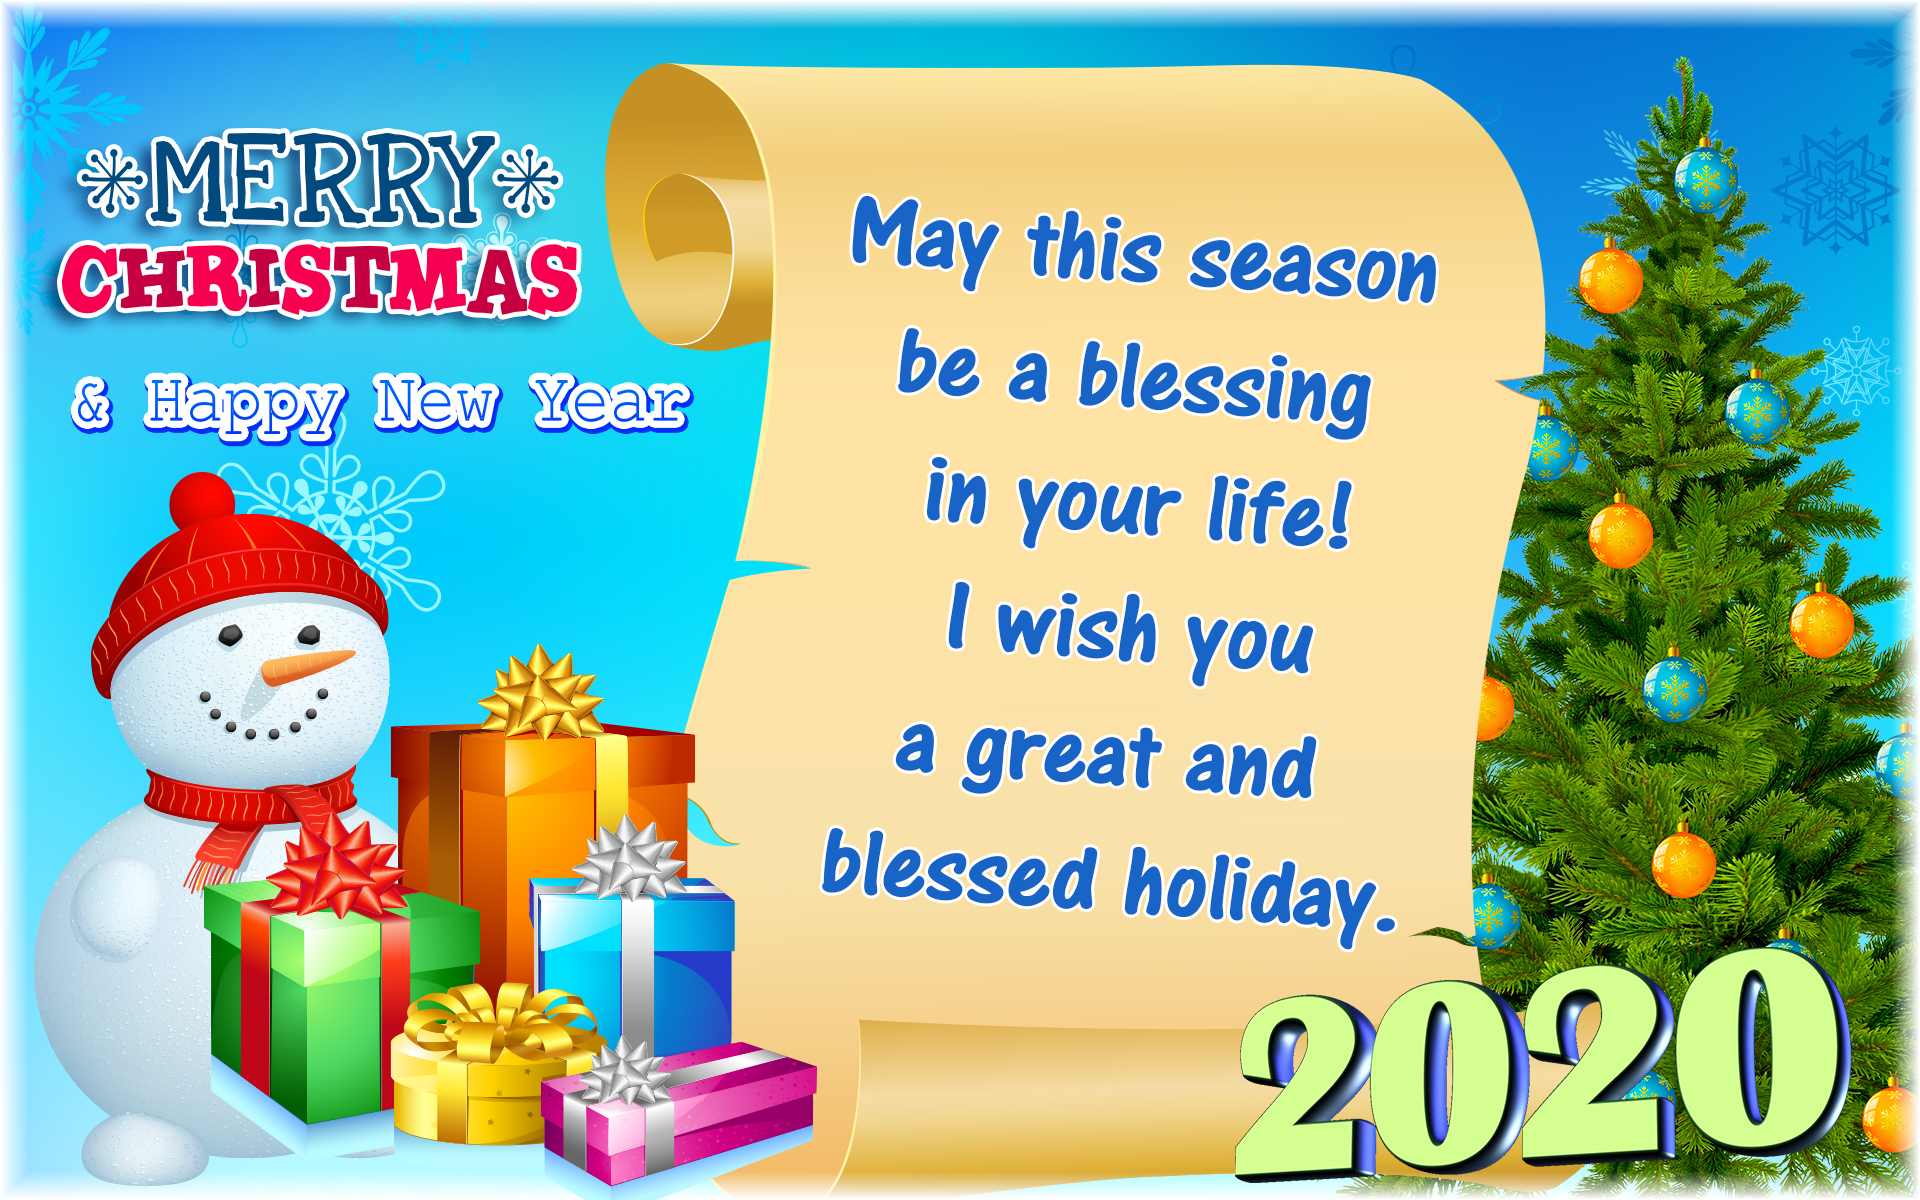 Warm Wishes Of Christmas & Holidays